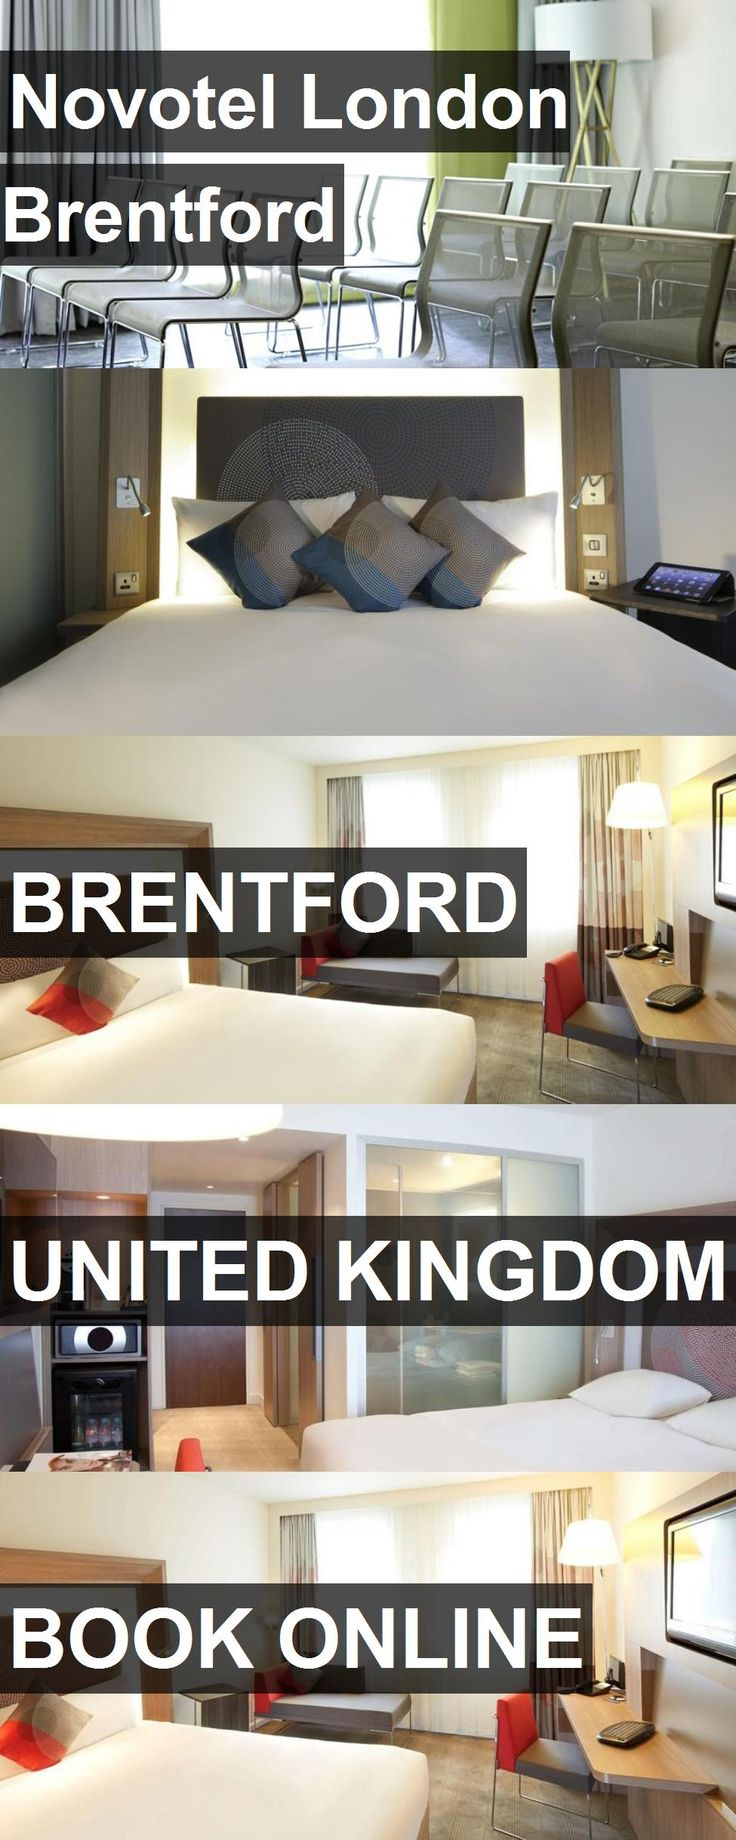 Hotel Novotel London Brentford in Brentford, United Kingdom. For more information, photos, reviews and best prices please follow the link. #UnitedKingdom #Brentford #travel #vacation #hotel